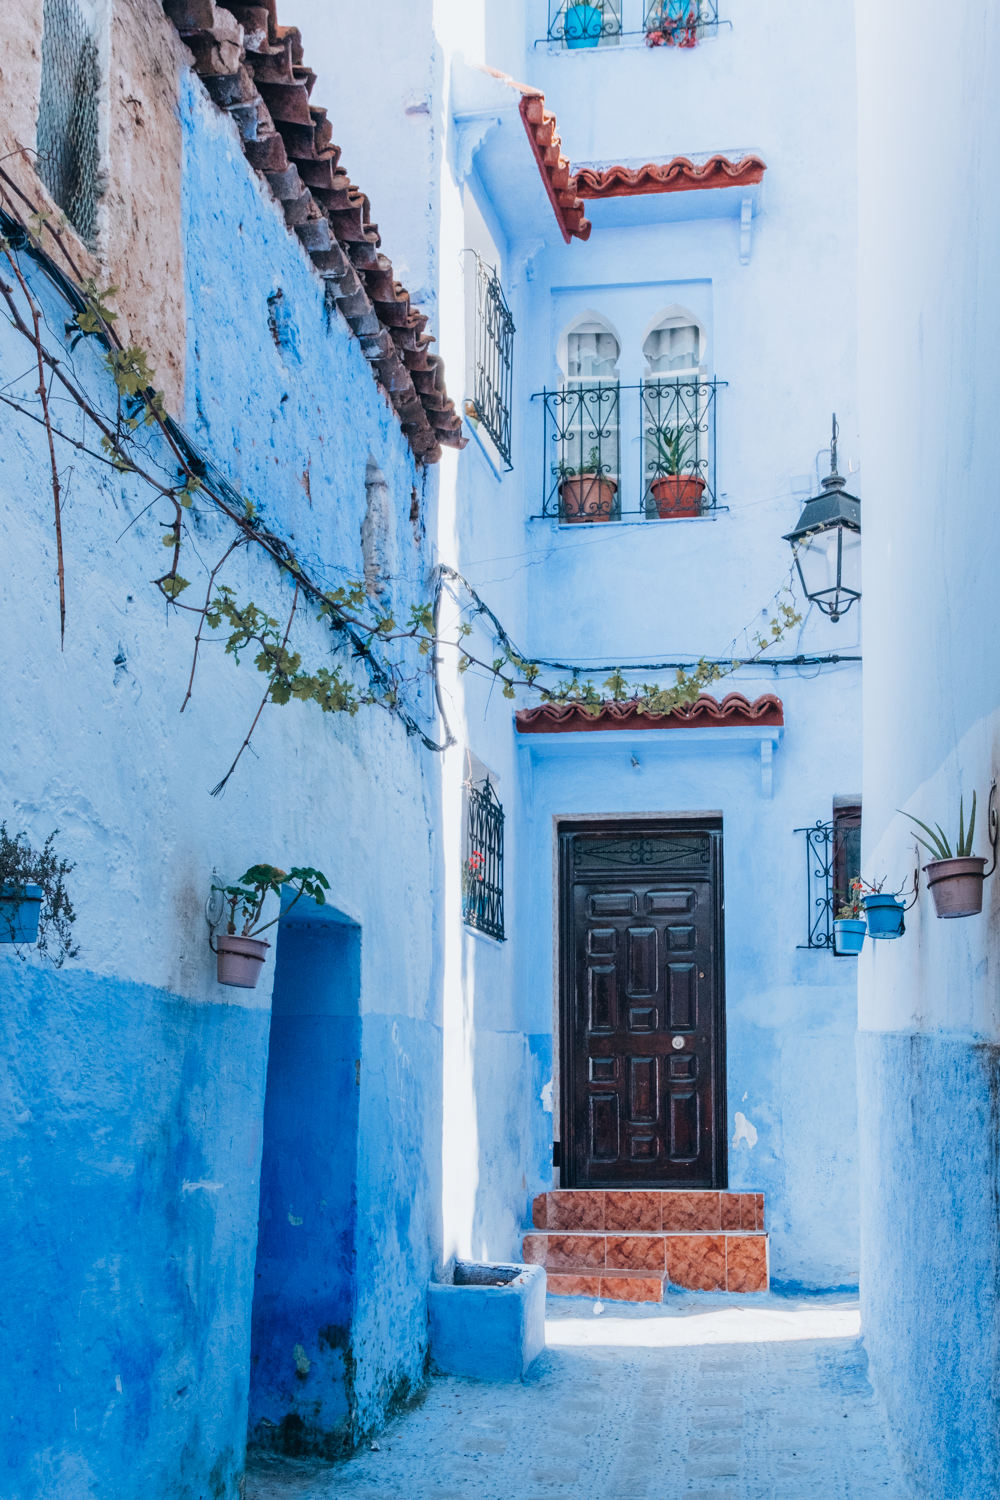 What to do in Chefchaouen - Morocco itinerary